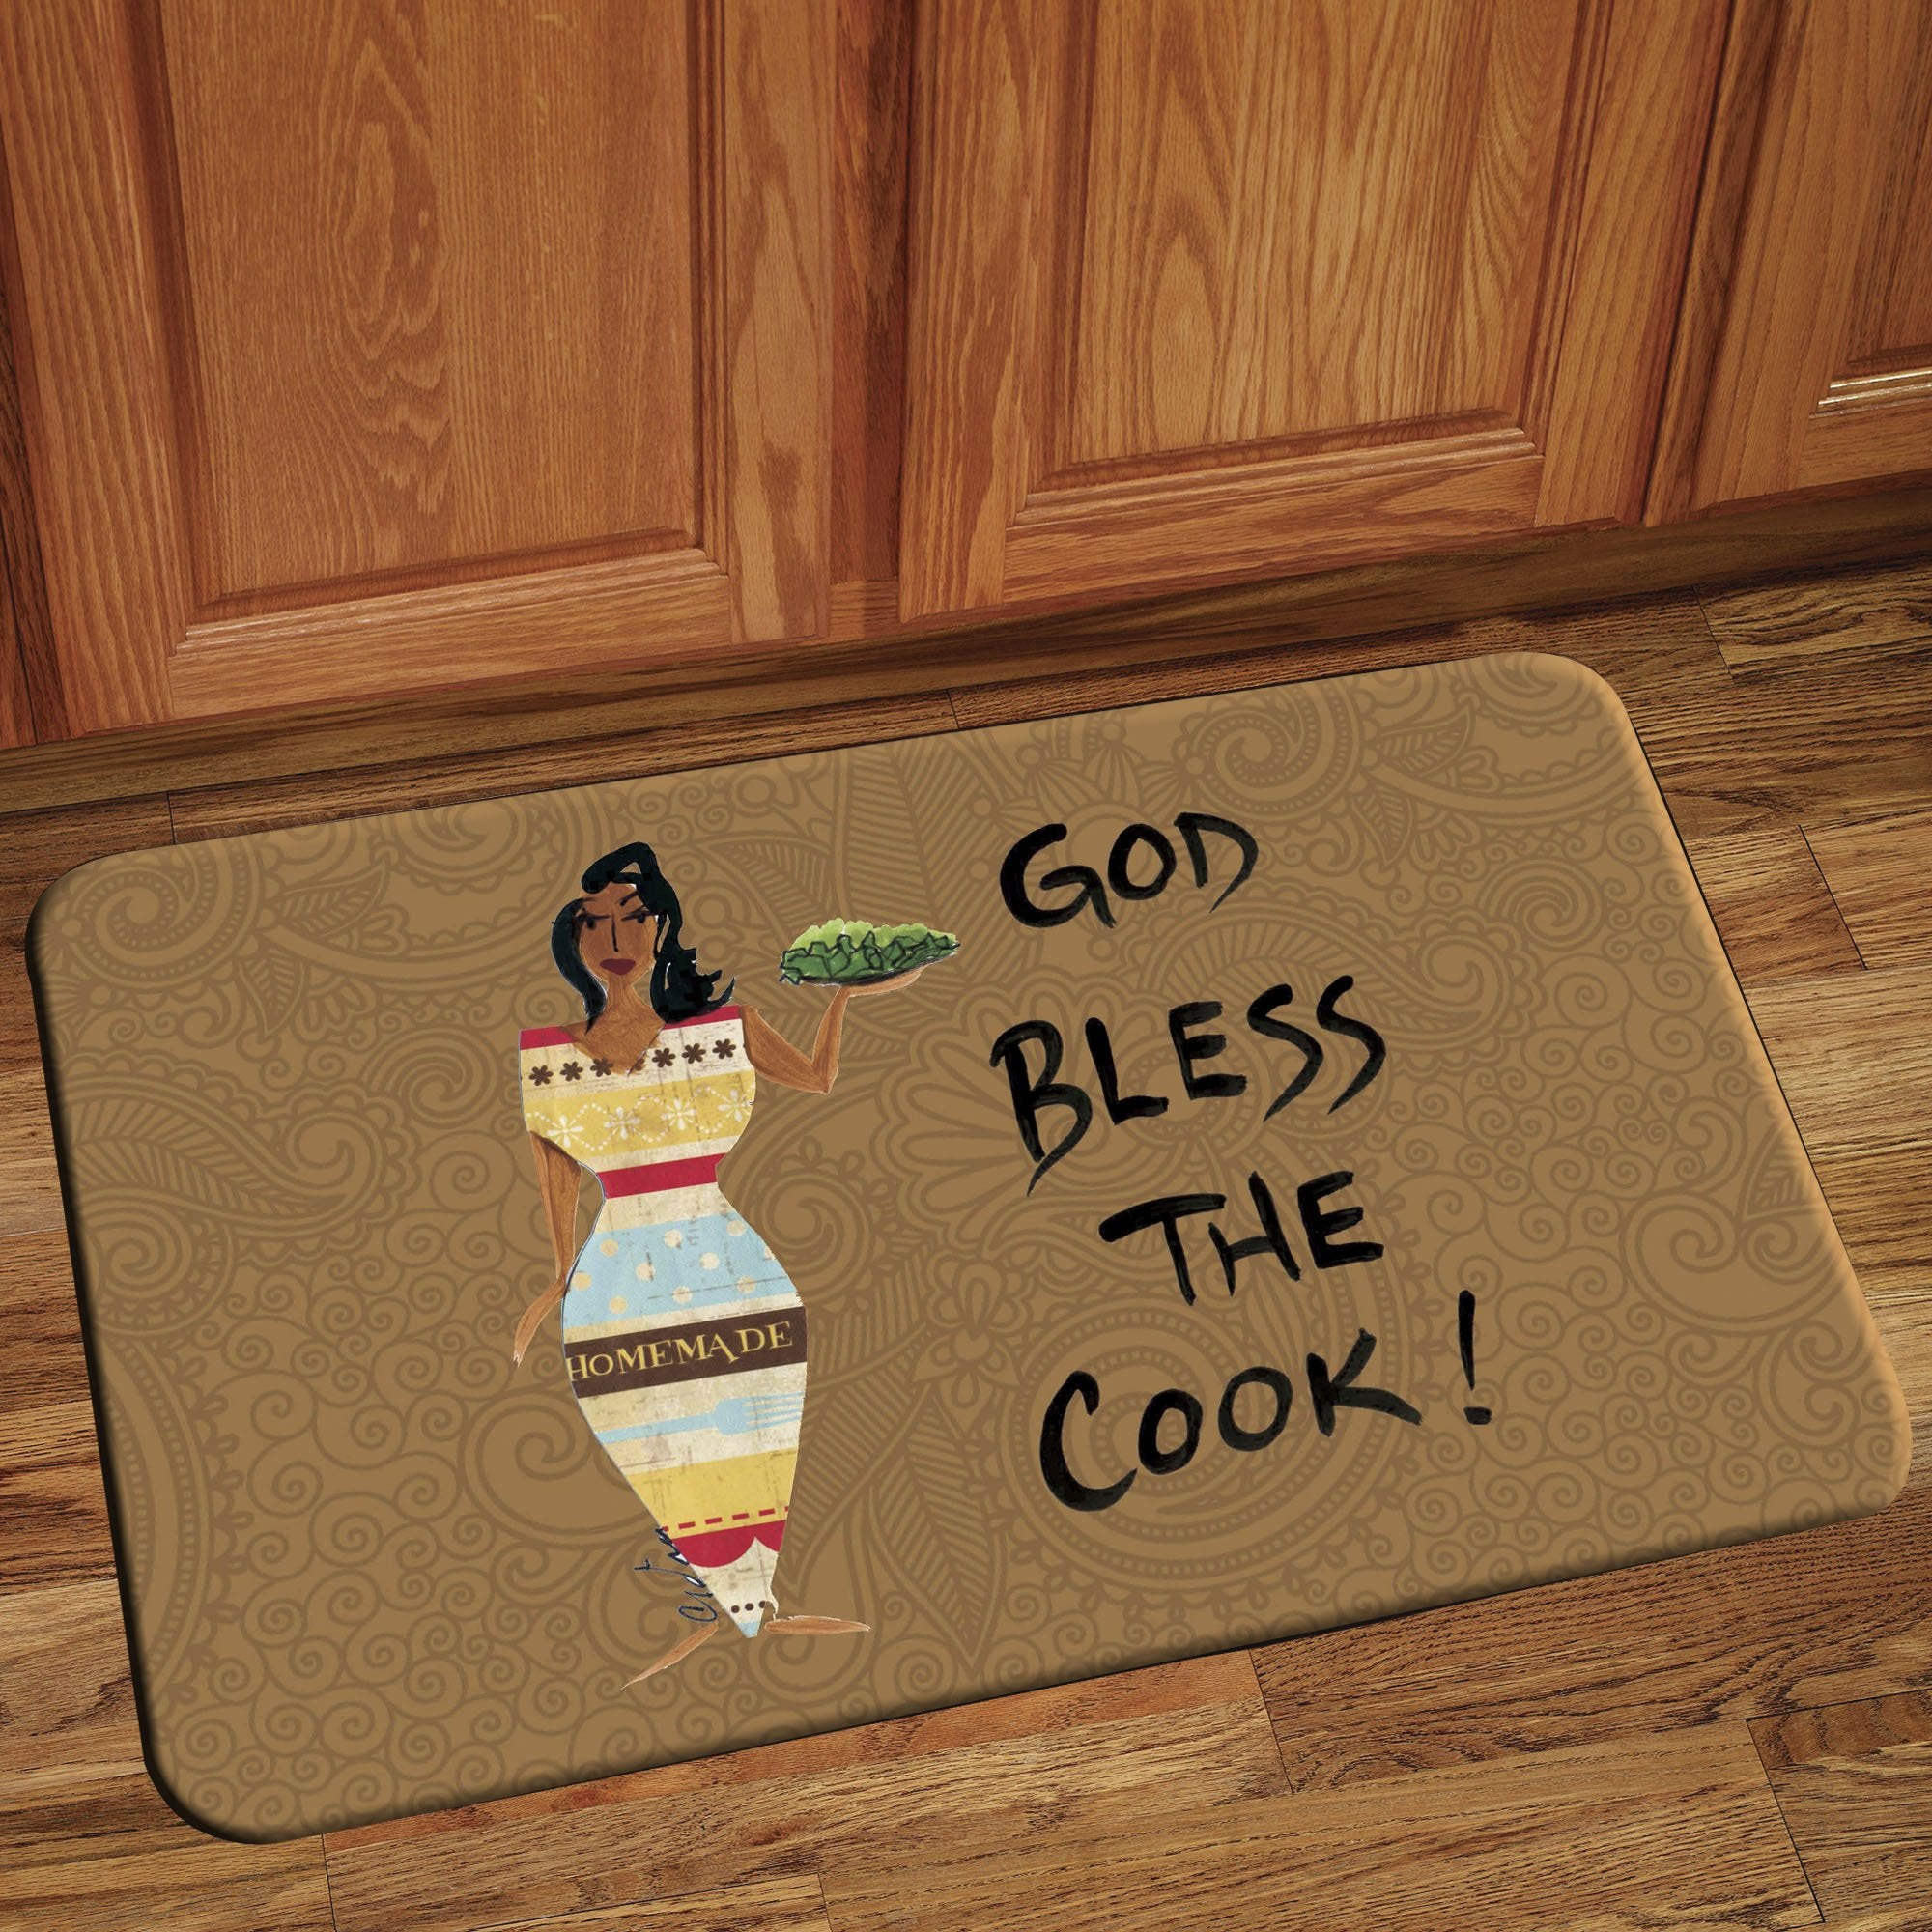 God Bless The Cook: Cidne Wallace Interior Floor Mat